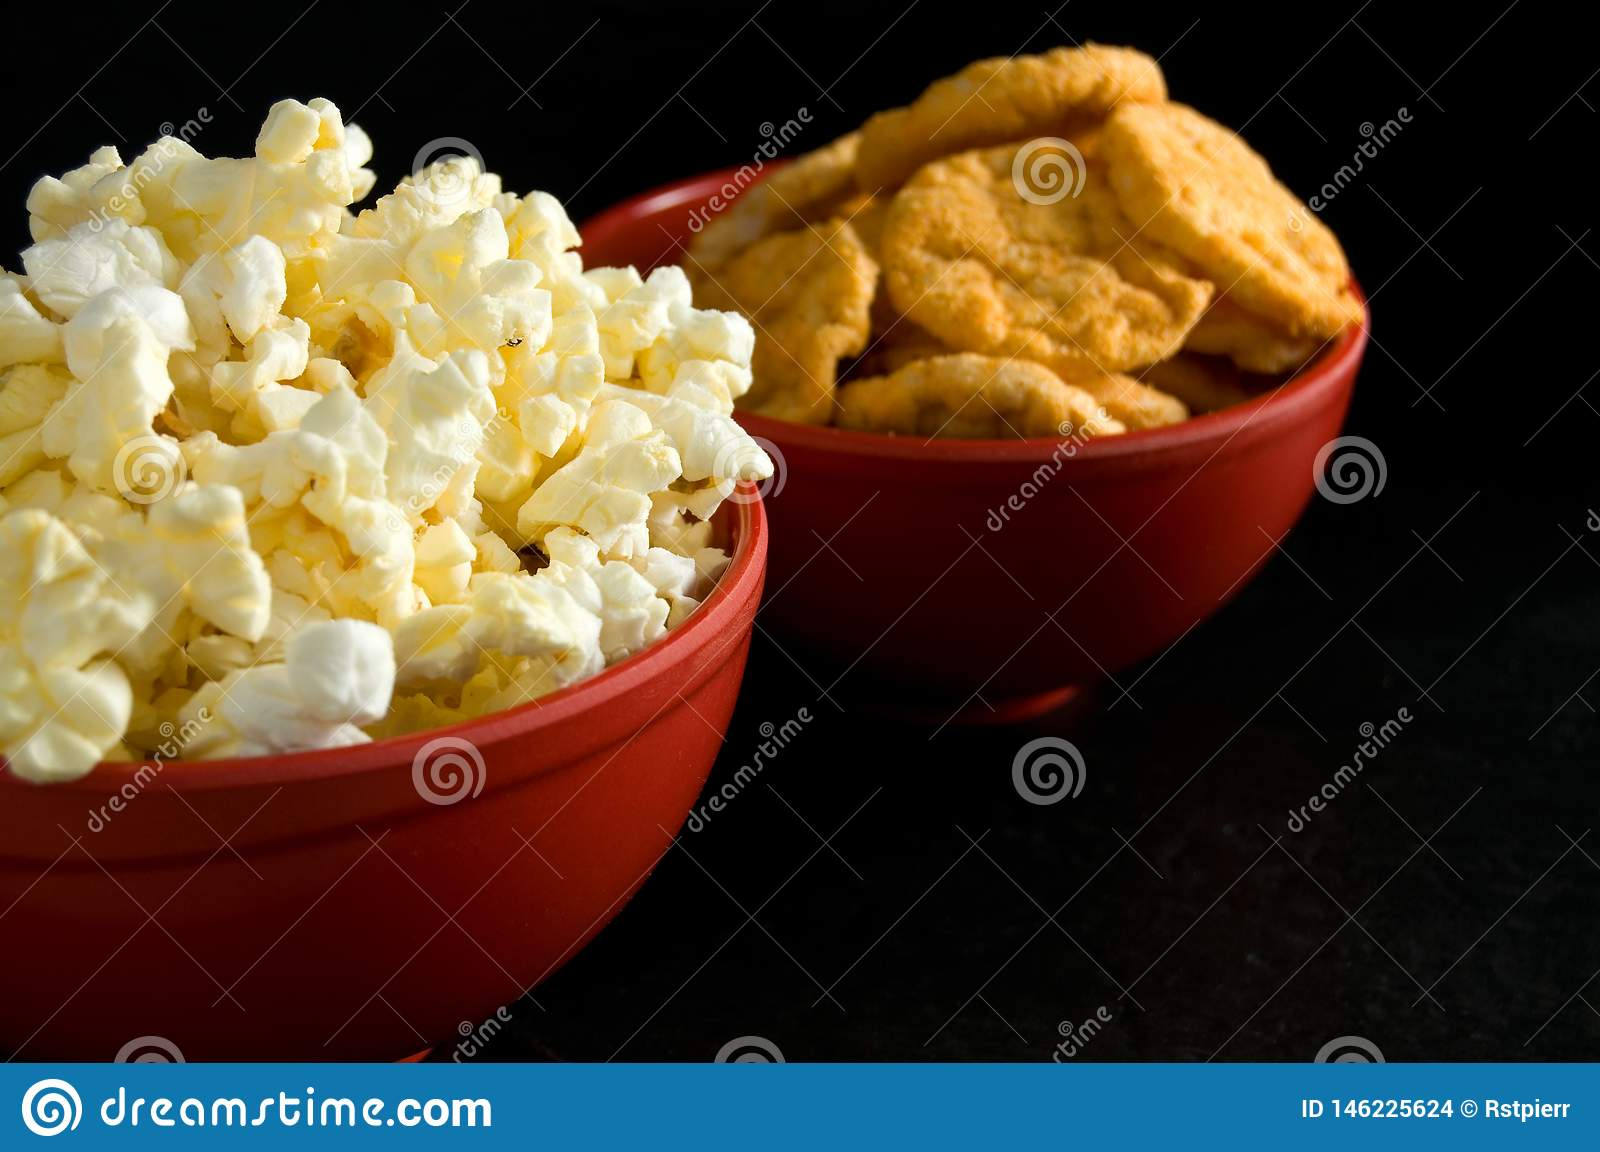 Close Side View Of Buttered Popcorn And Bbq Rice Chips In Red Bowls Isolated On Black Stock Photo Image Of Pleasure Corn 146225624